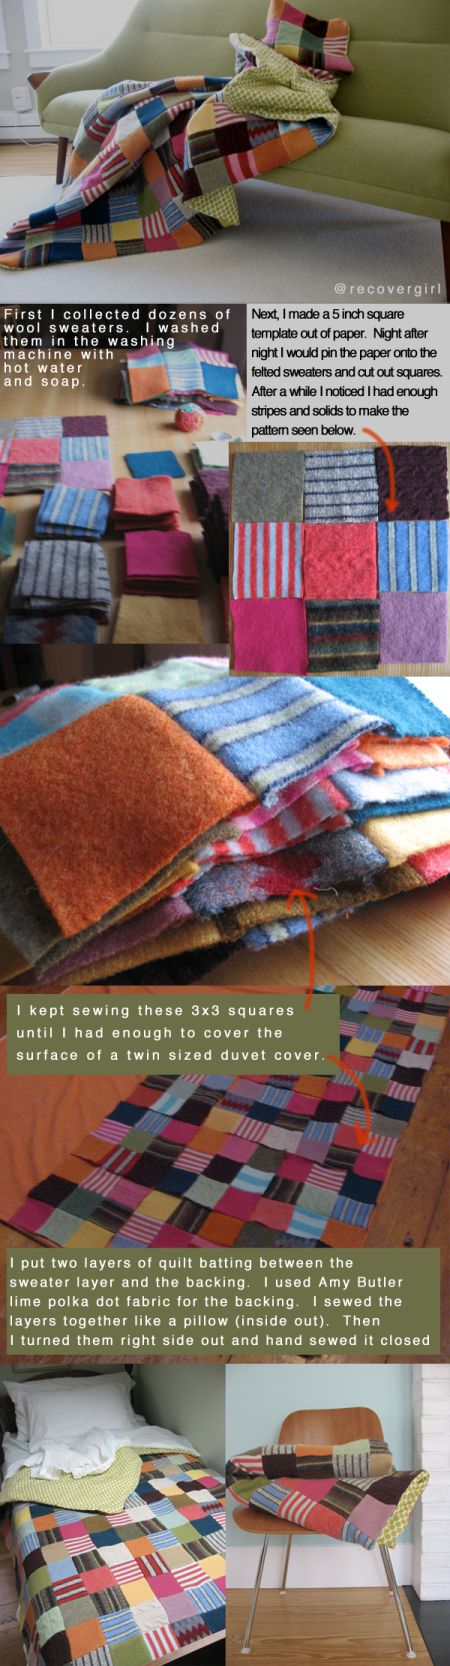 How to make the sweater quilt